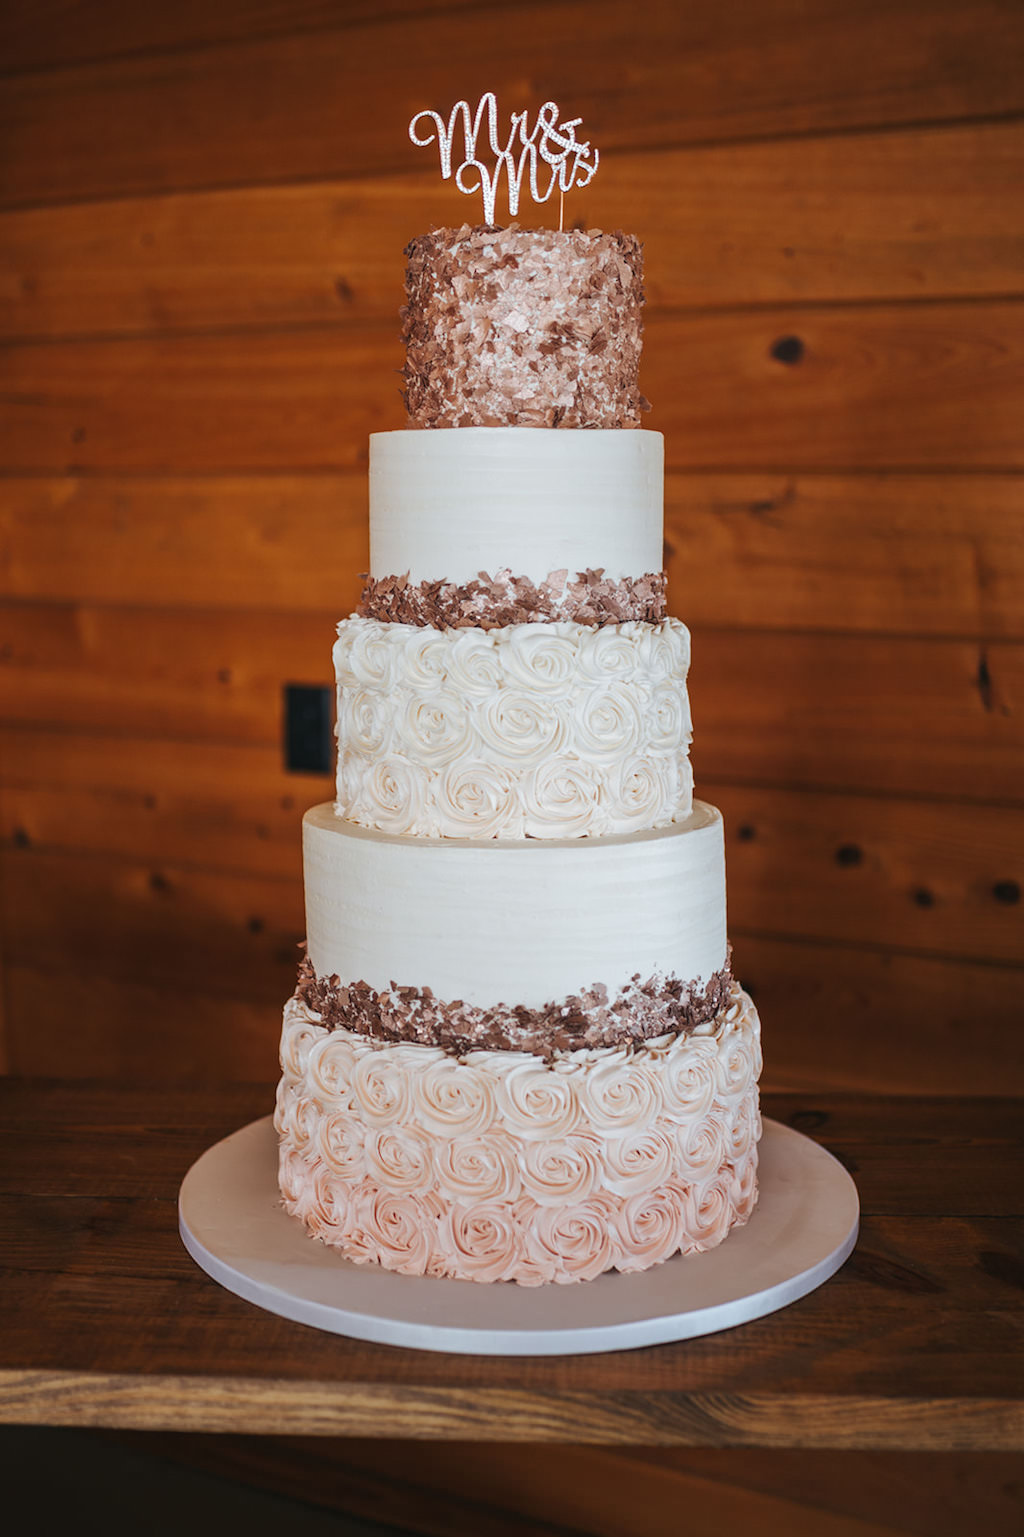 Elegant Five Tier White and Blush Pink Ombre Rose Frosted and Dark Pink Sparkle Embellished Wedding Cake with Custom Cake Topper   Tampa Wedding Planner Kelly Kennedy Weddings and Events